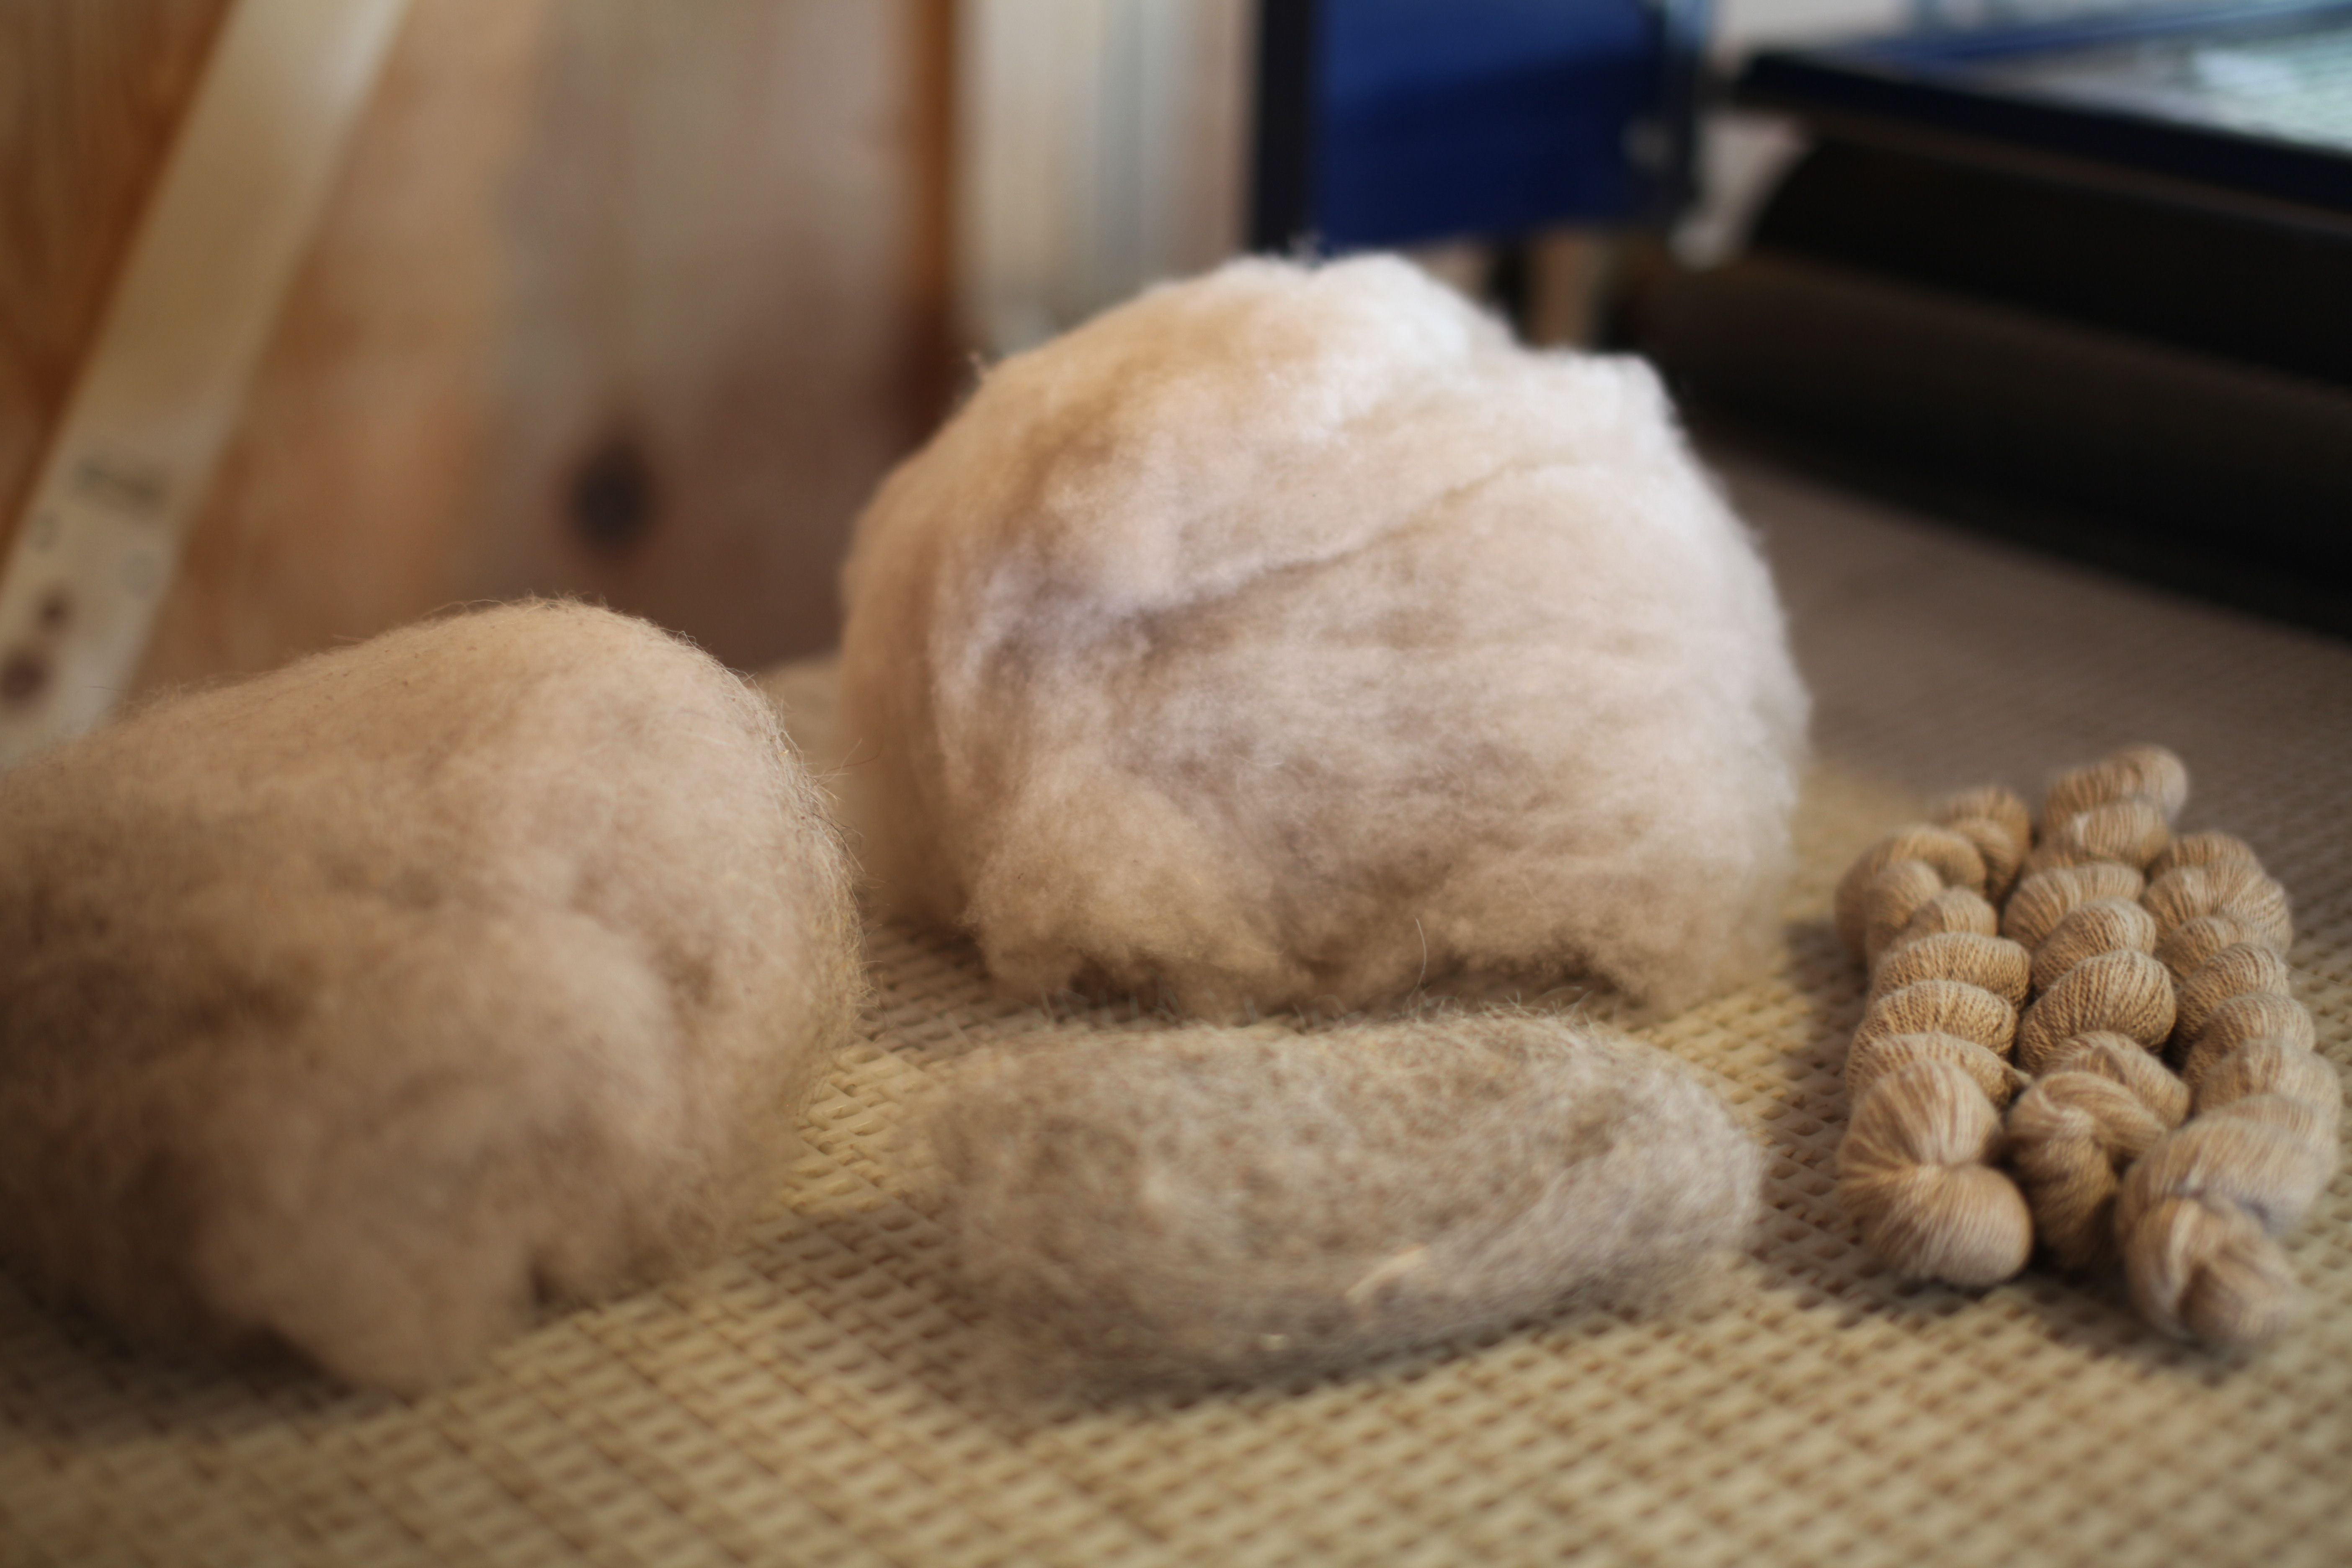 The de-hairing process, from left (incoming material) to right (spun fiber)